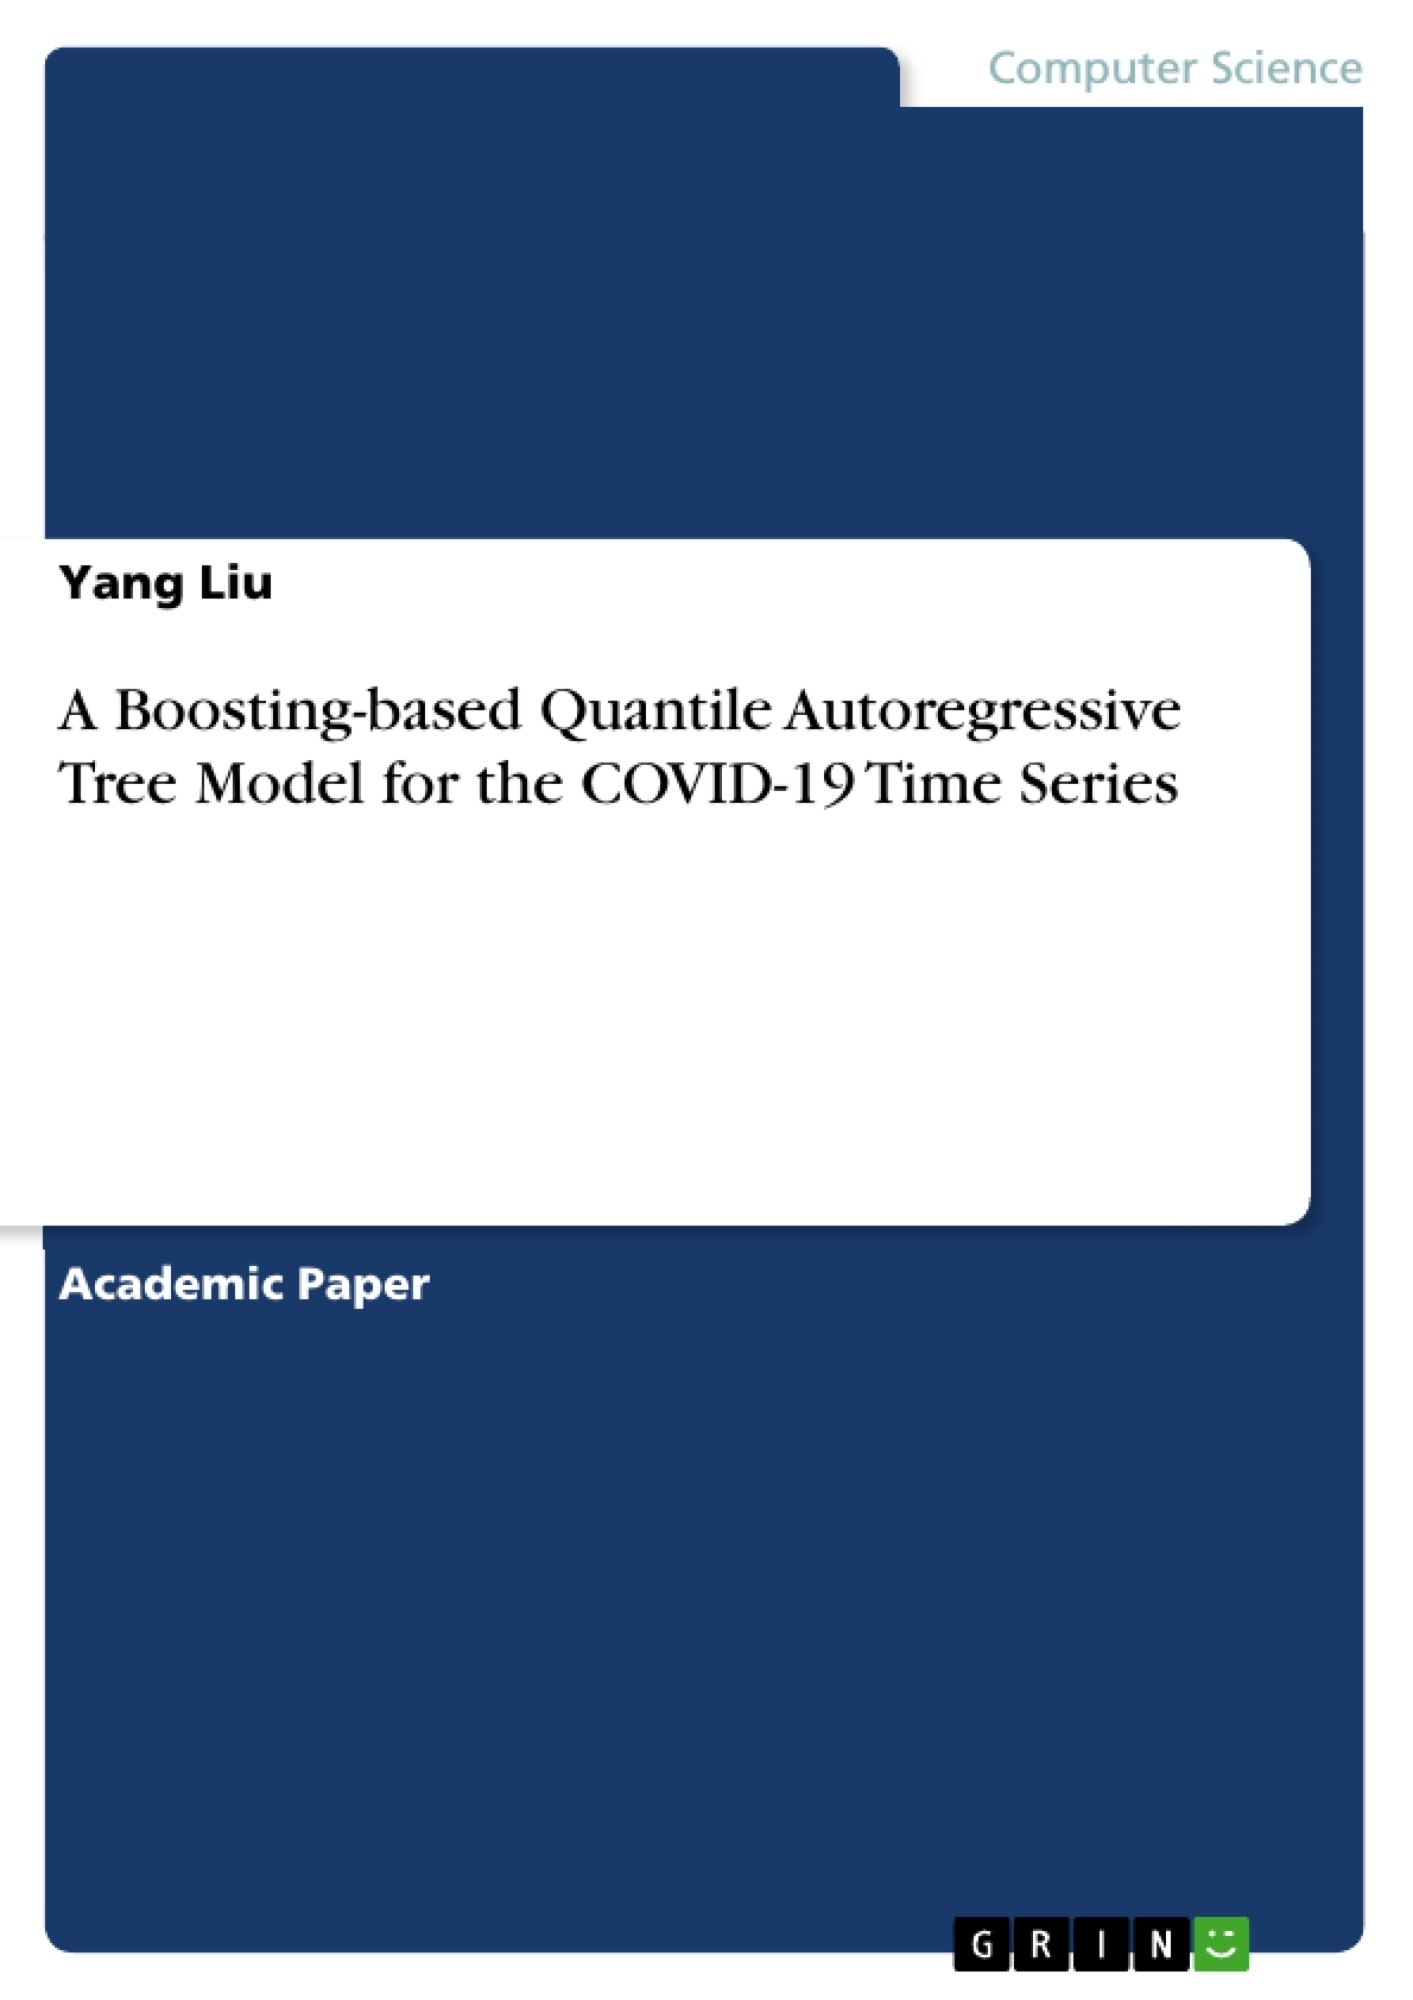 Title: A Boosting-based Quantile Autoregressive Tree Model for the COVID-19 Time Series